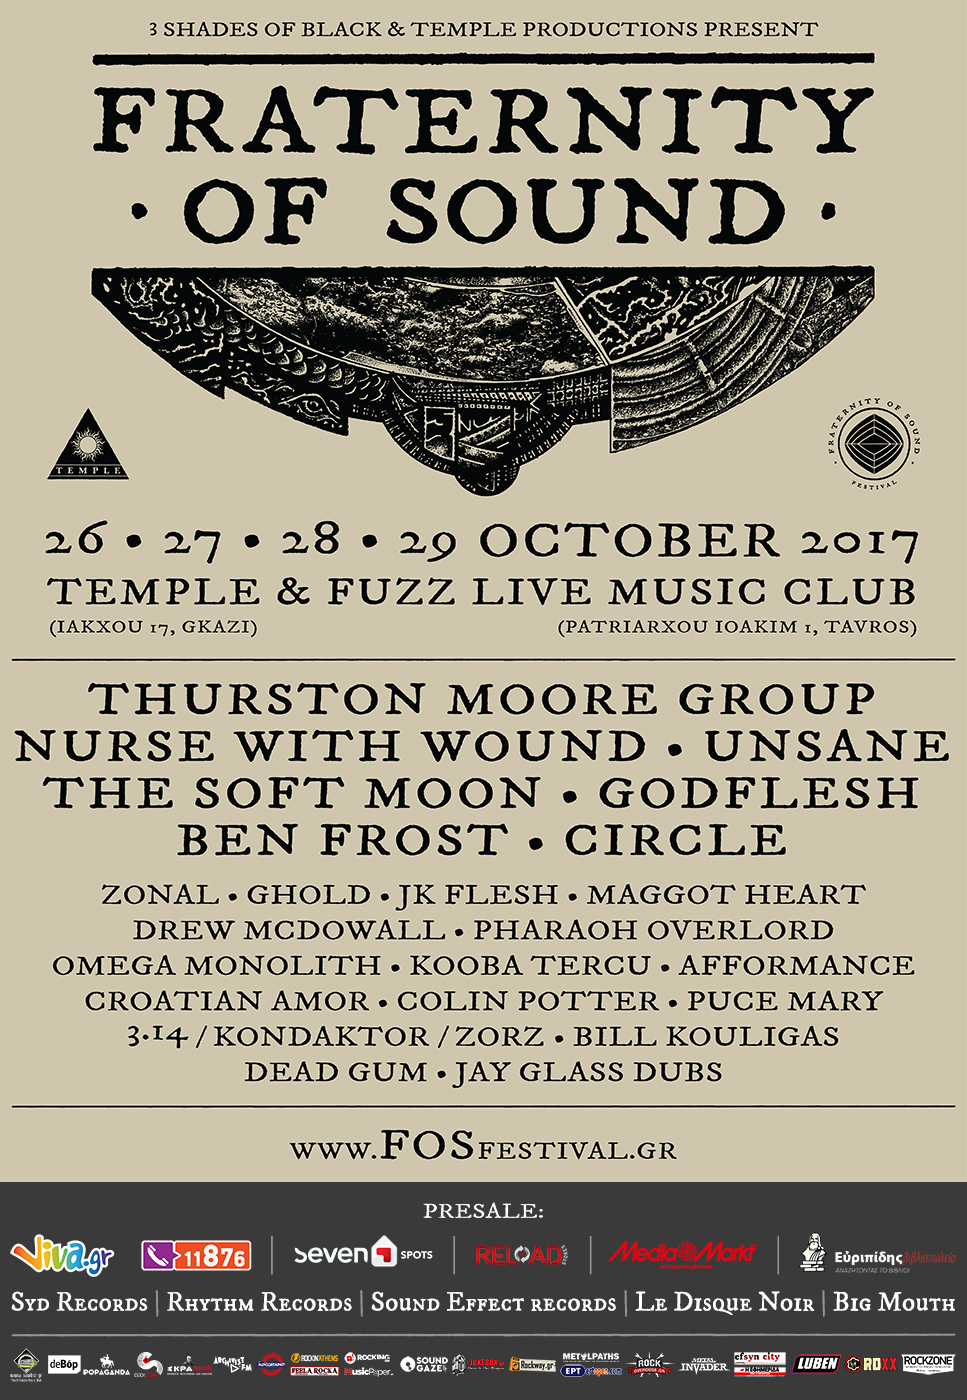 fraternity-of-sound-festival-2017-preview-10